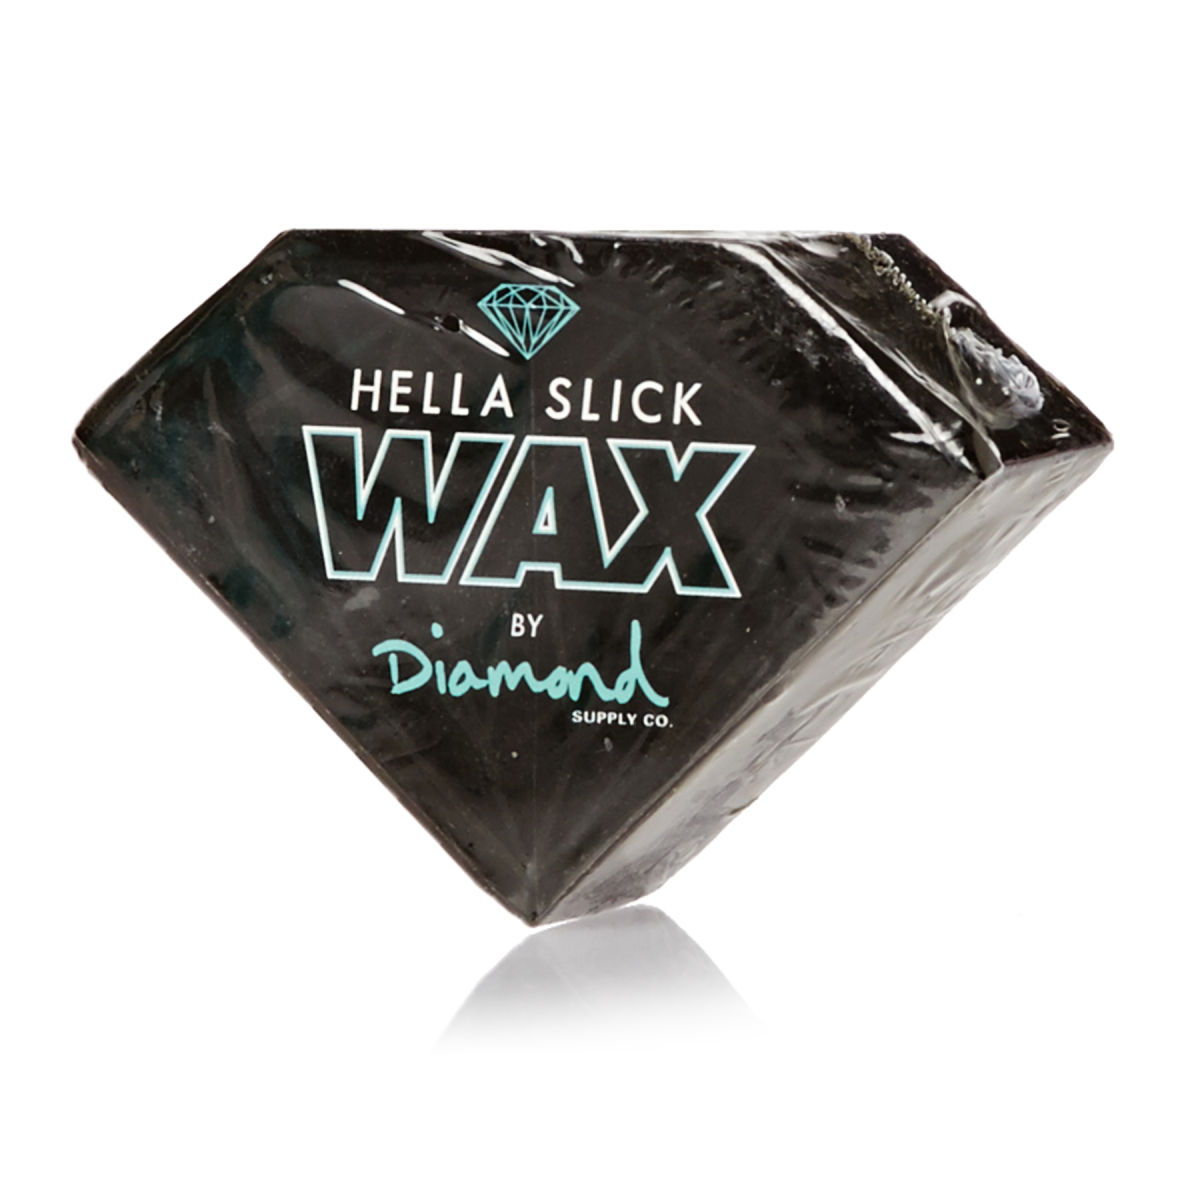 Diamond Supply Co Wax brilliant mini slide fast on skateboard